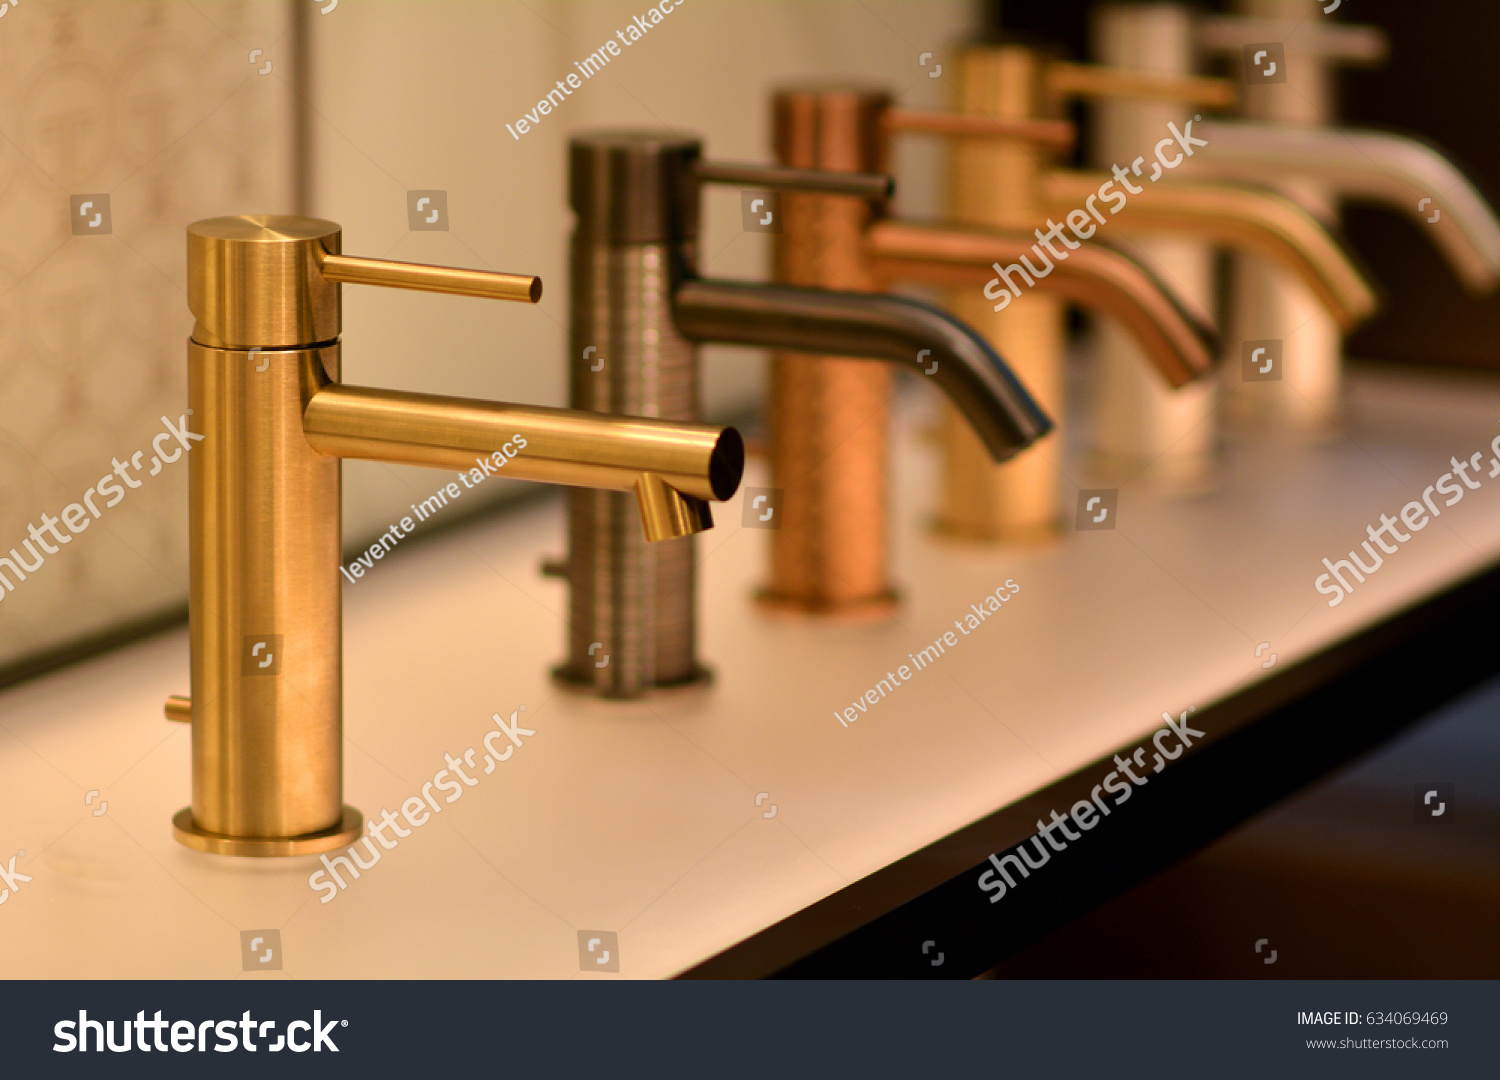 Luxury Bathroom Gold Faucet Golden Faucet Stock Photo (Royalty Free ...